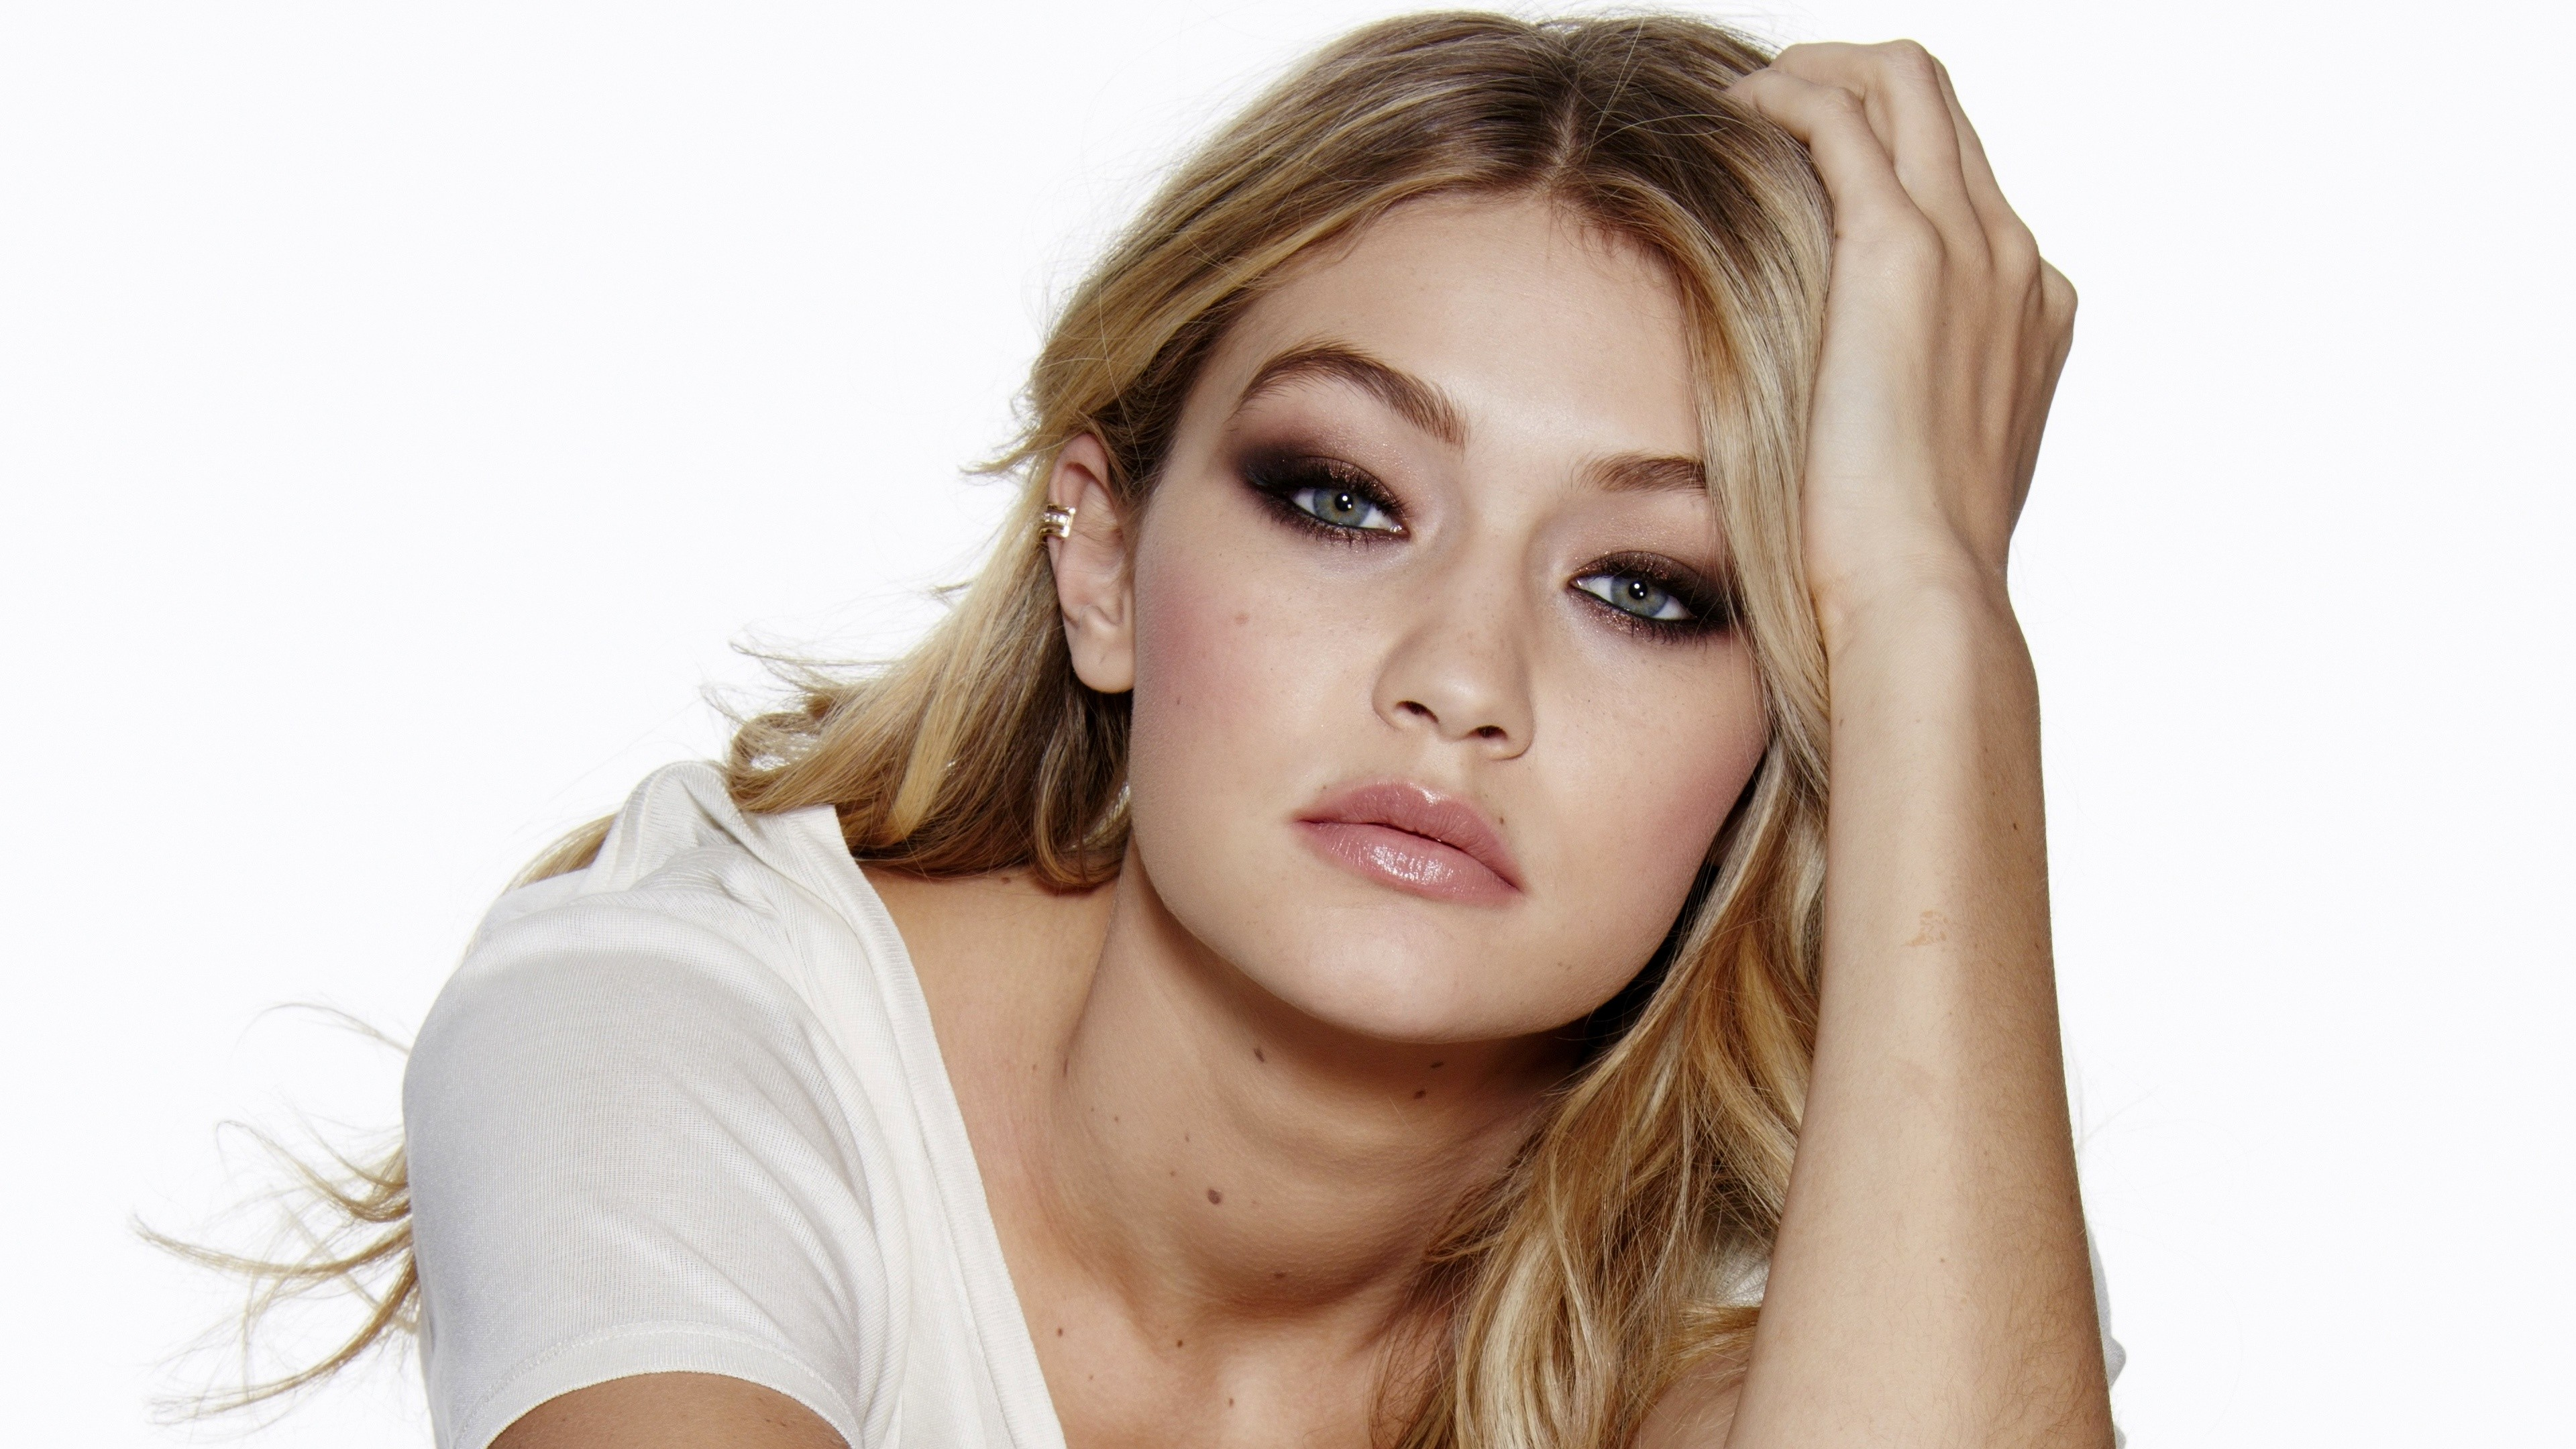 gigi hadid closeup face 4k 1536862999 - Gigi Hadid Closeup Face 4k - model wallpapers, hd-wallpapers, girls wallpapers, gigi hadid wallpapers, face wallpapers, closeup wallpapers, celebrities wallpapers, 4k-wallpapers